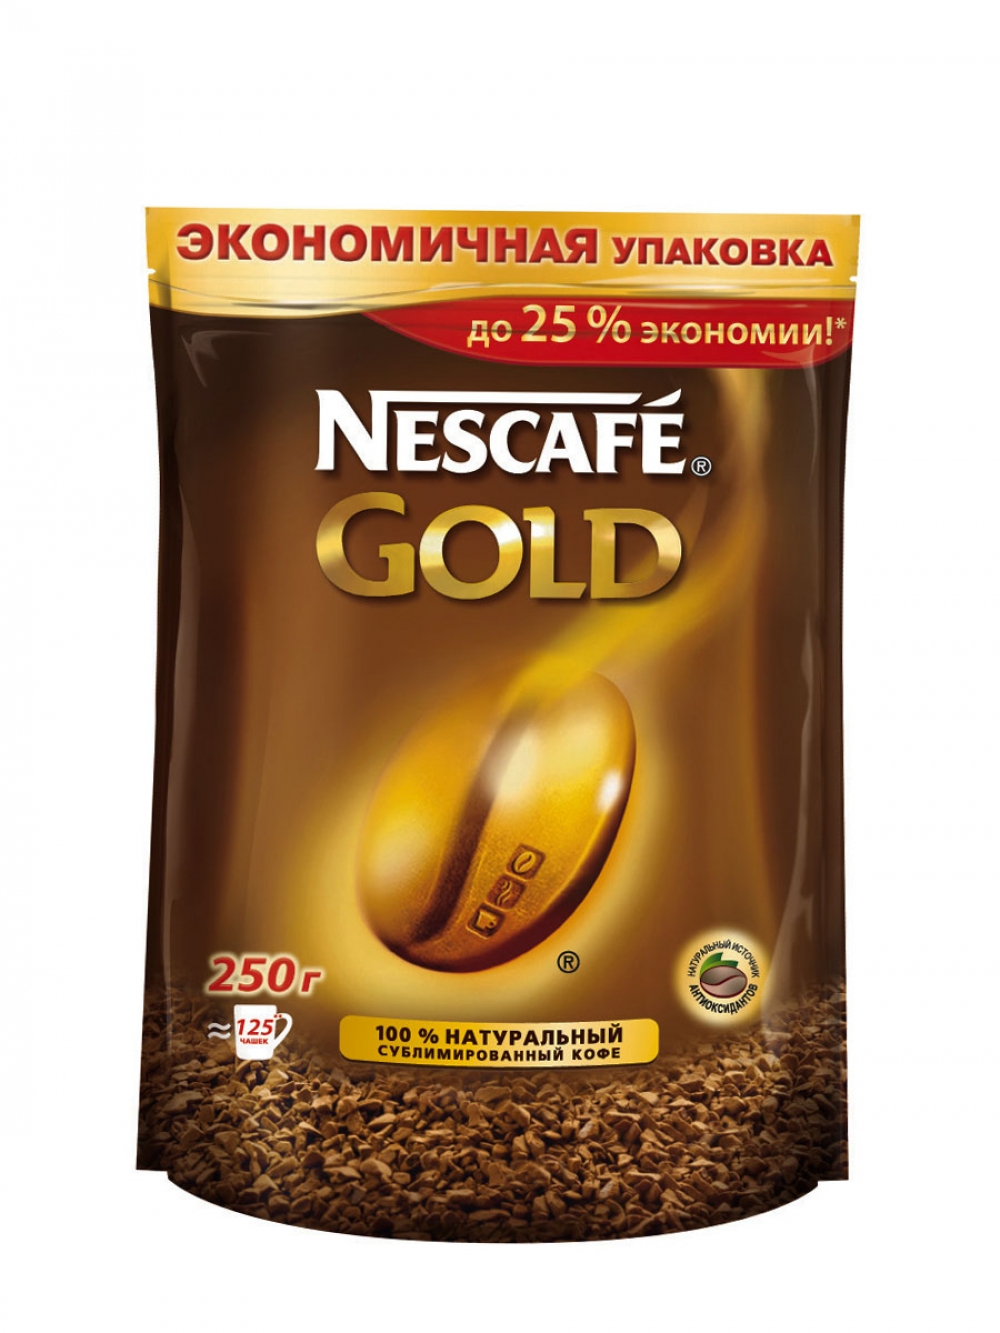 кофе Nescafe GOLD м/у 250гр